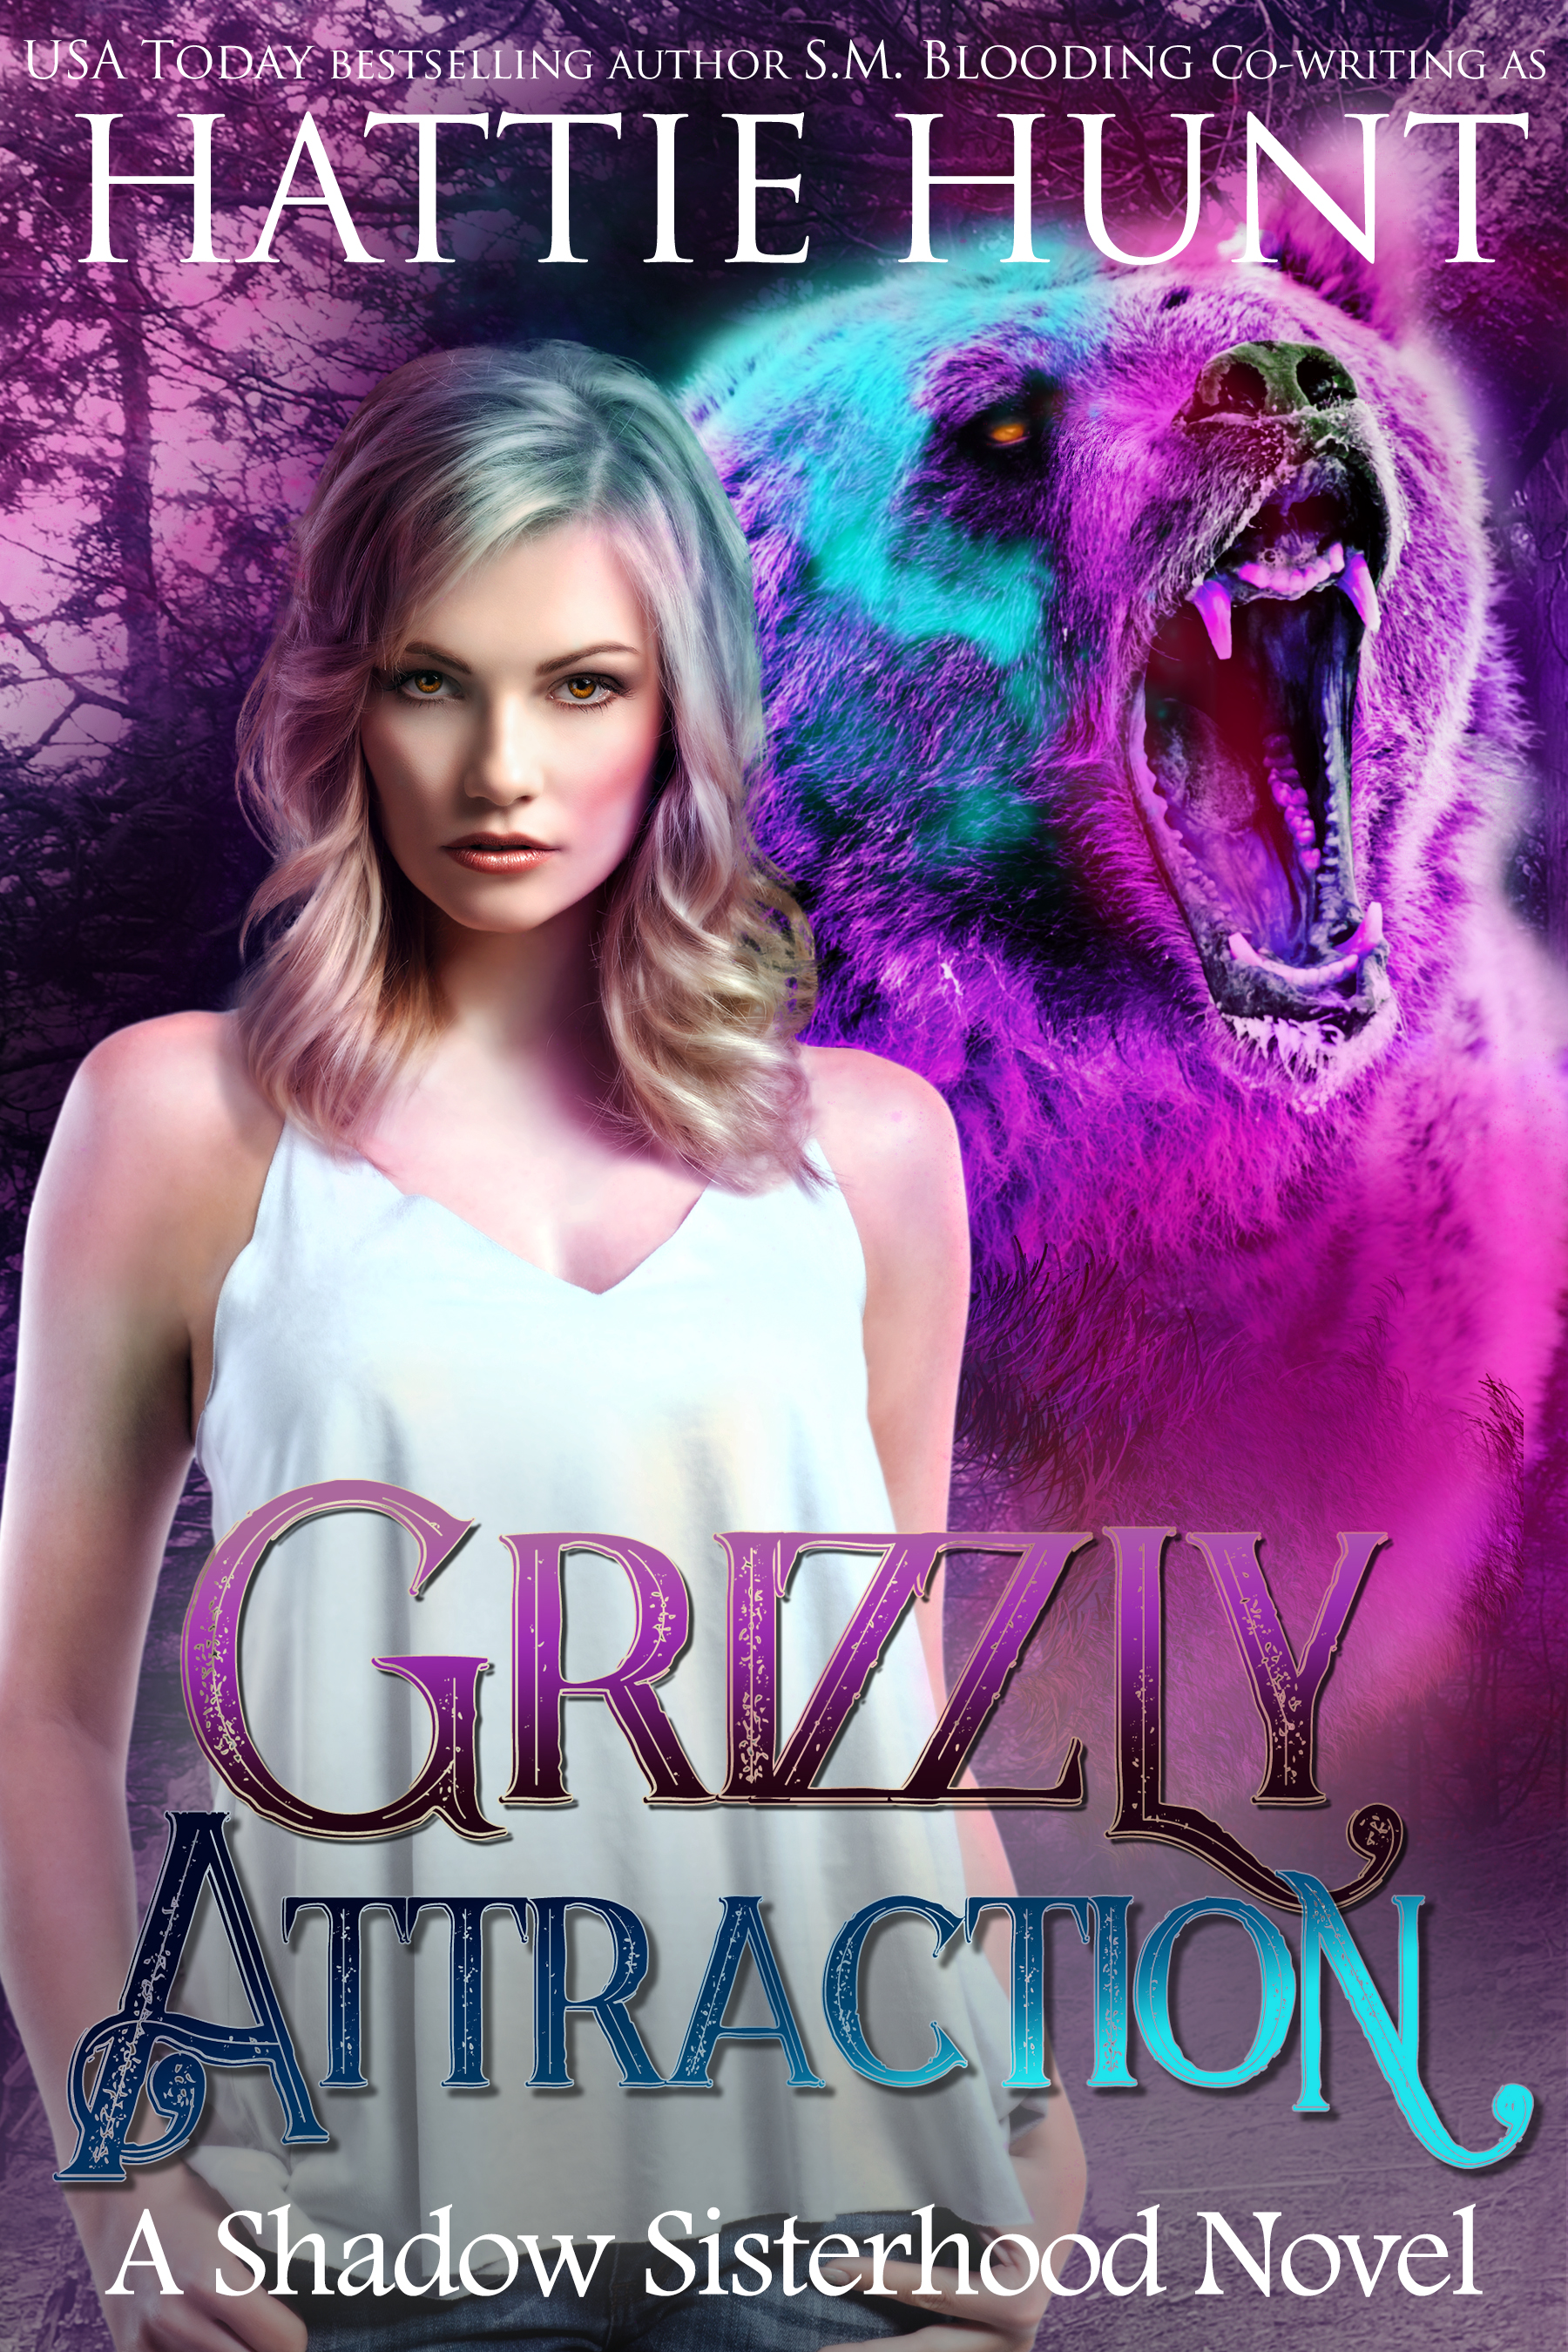 2.3i Grizzly Attraction.jpg